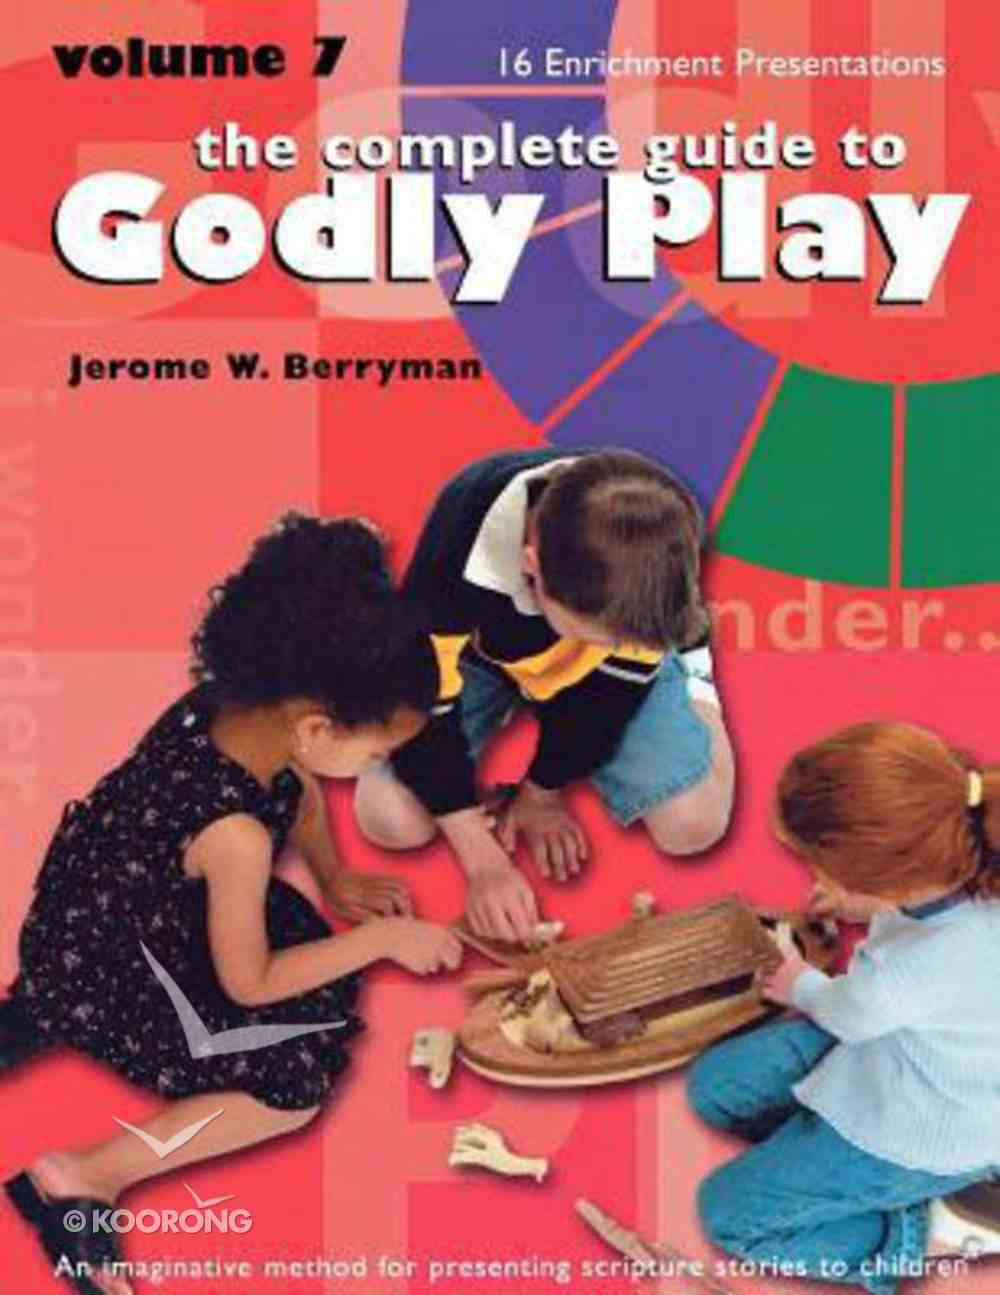 Complete Guide to Godly Play, the - Volume 7 - Enrichment Presentations (#07 in The Complete Guide To Godly Play Series) Paperback